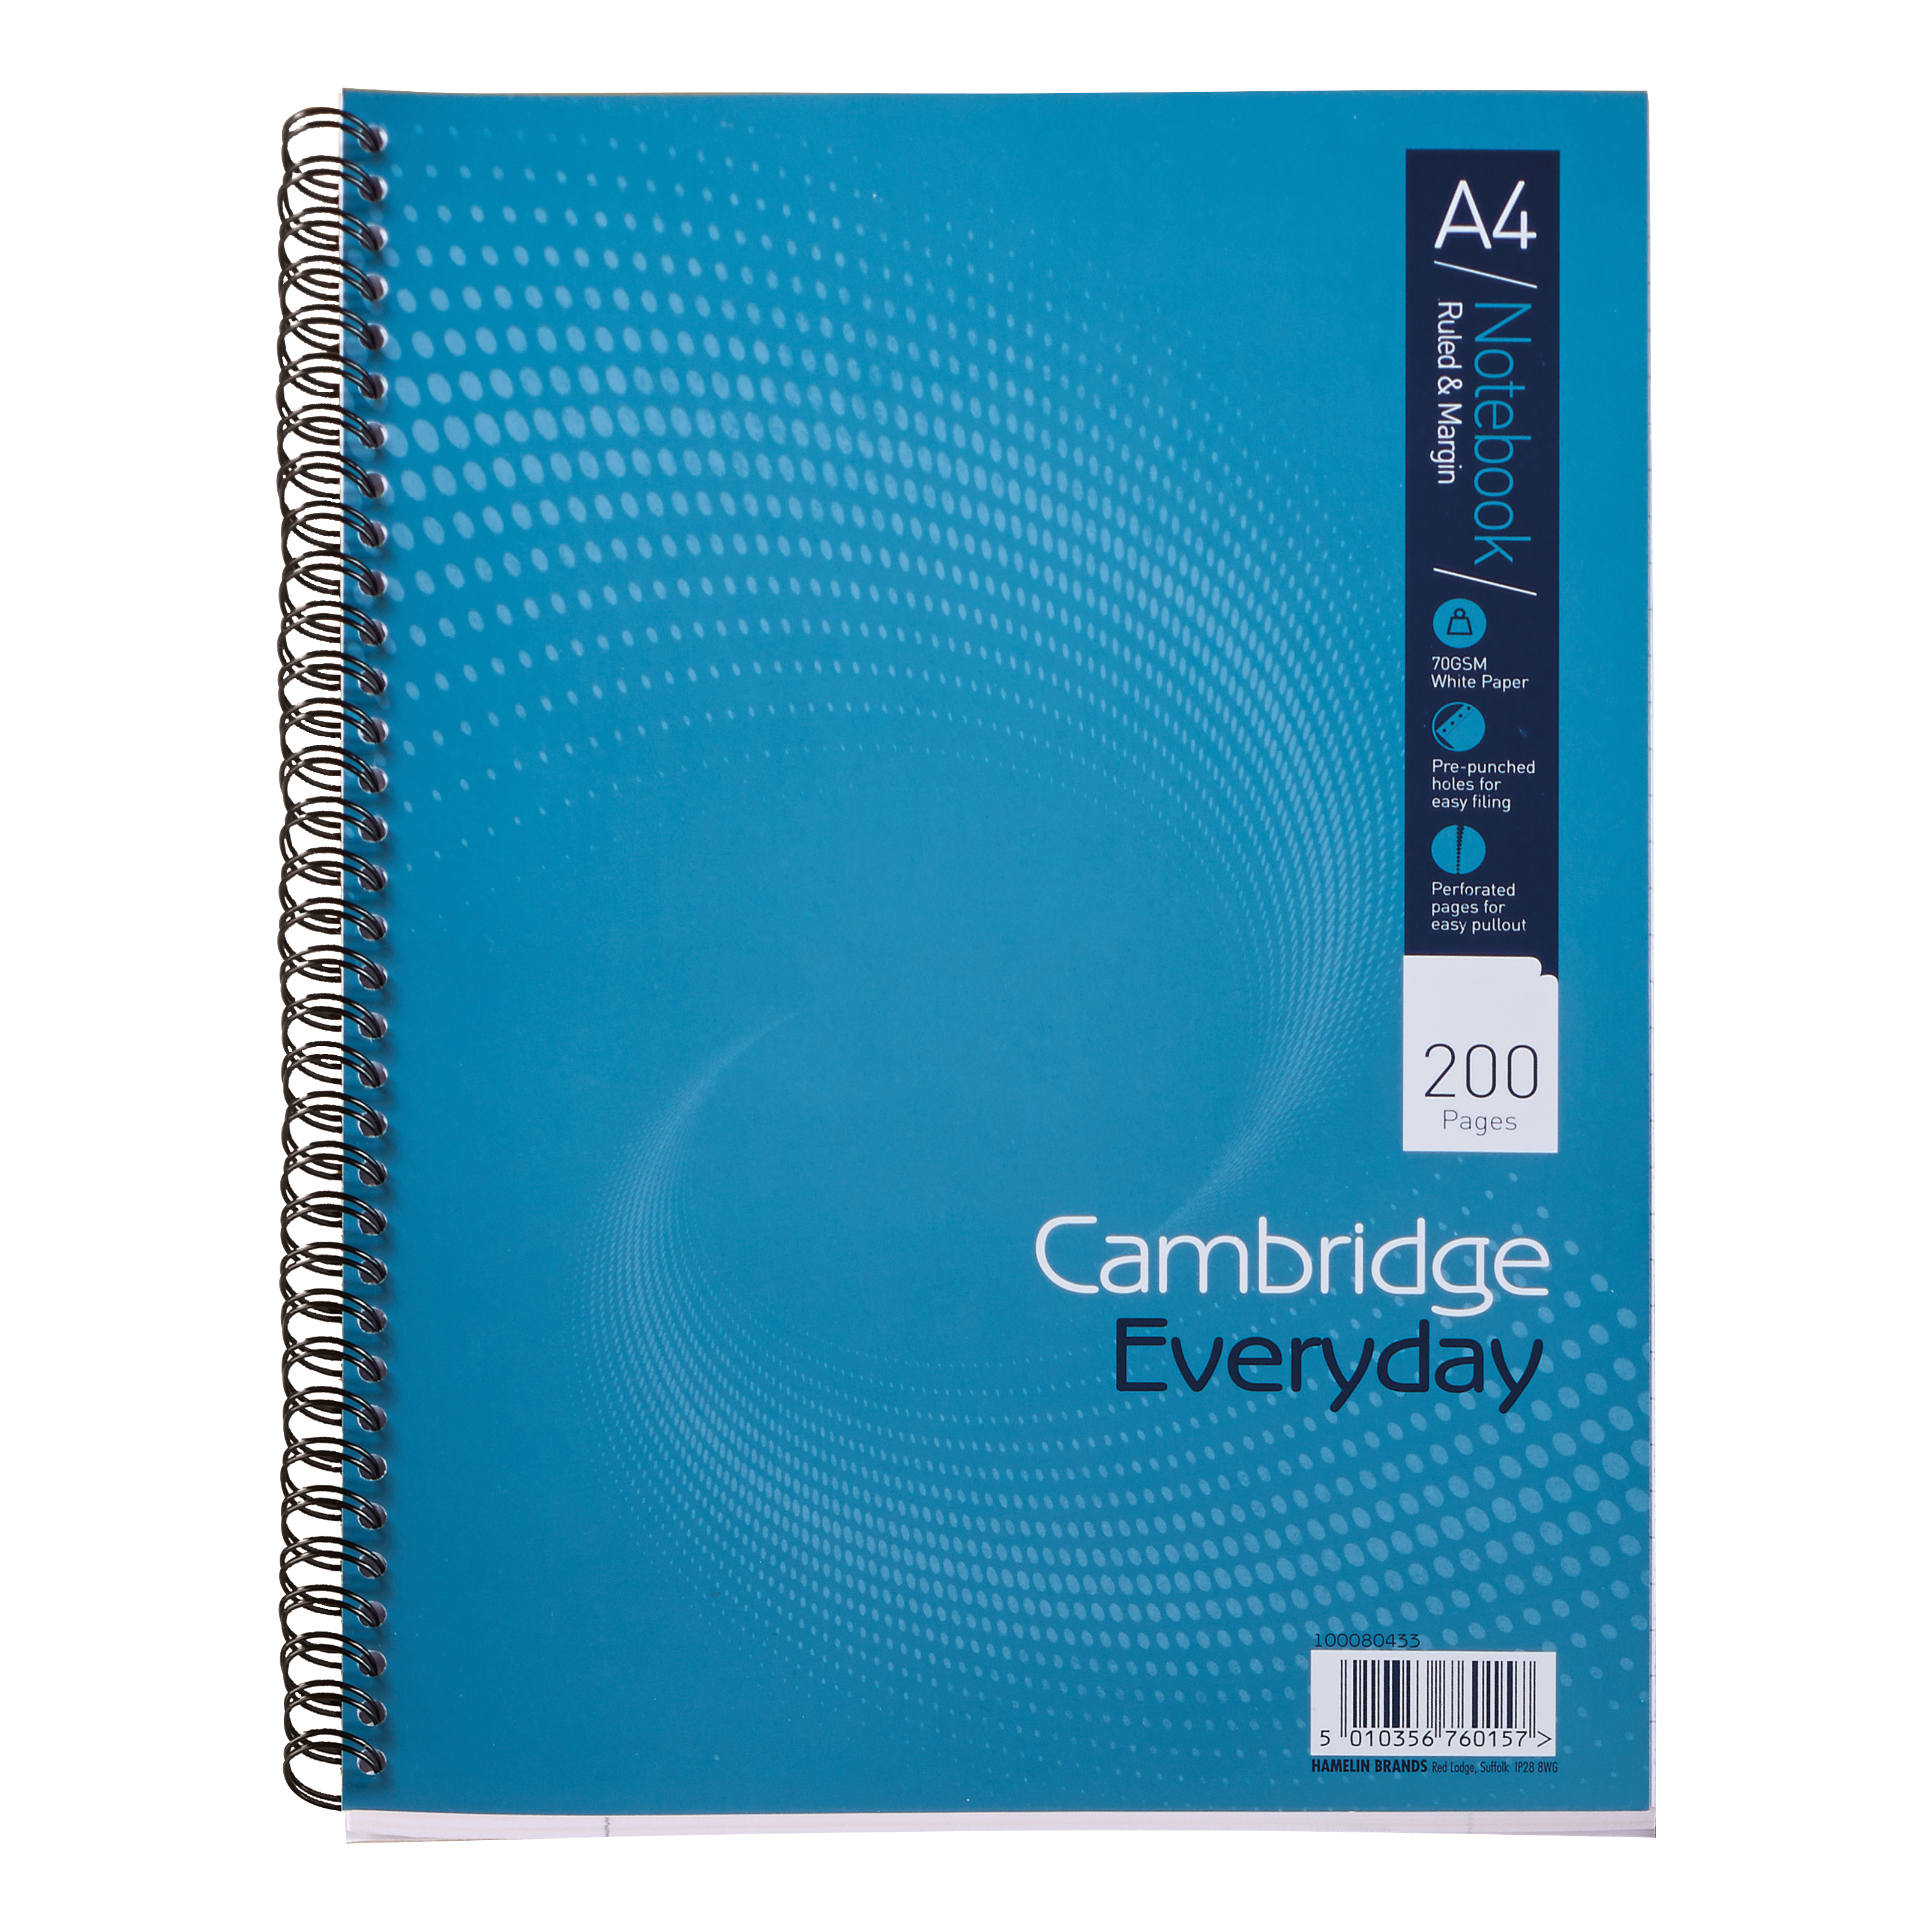 Cambridge Everyday Nbk Wirebound 70gsm Ruled Margin Perf Punched 4 Holes 200pp A4+ Ref 100080433 [Pack 3]